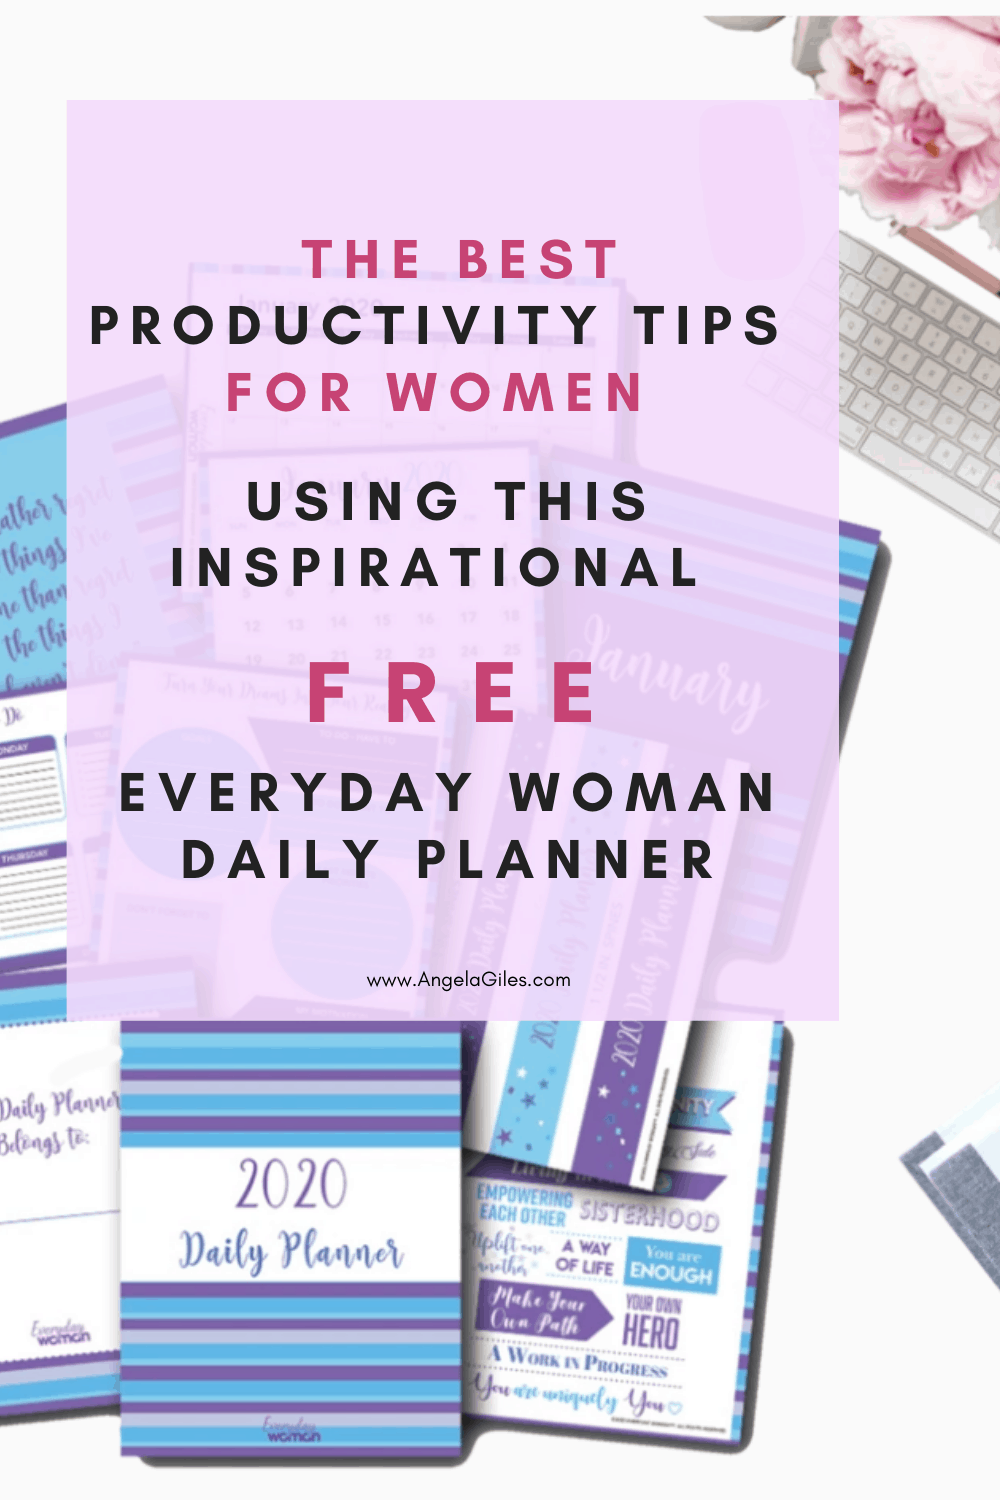 Download this fun cute 2020 daily planner! 15,000 other women and moms use it to get organized.  You will LOVE it for your weekly schedules, monthly calendars, meal planning, brain dumping your ideas & thoughts. It is perfect for the minimalist who likes tracking everything in life, work & house.  You can nail down their goal setting. #dailyplannerprintablesfree #dailyplannertemplate #dailyplannertimemanagement #dailyplannerweeklyschedule #dailyplannergoalsetting #dailyplannerorganizing...